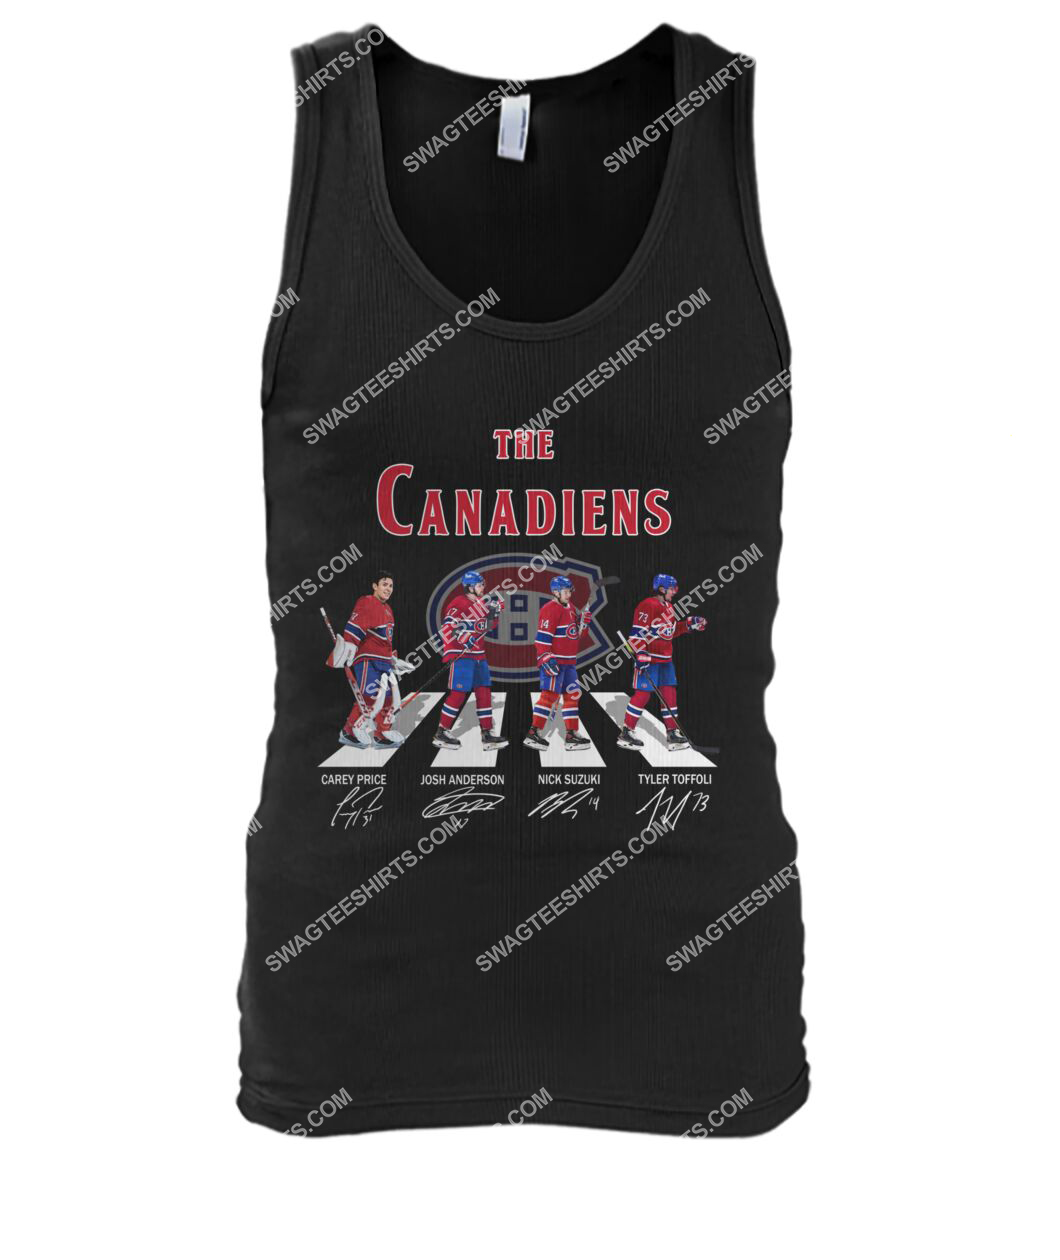 abbey road the montreal canadiens signatures tank top 1